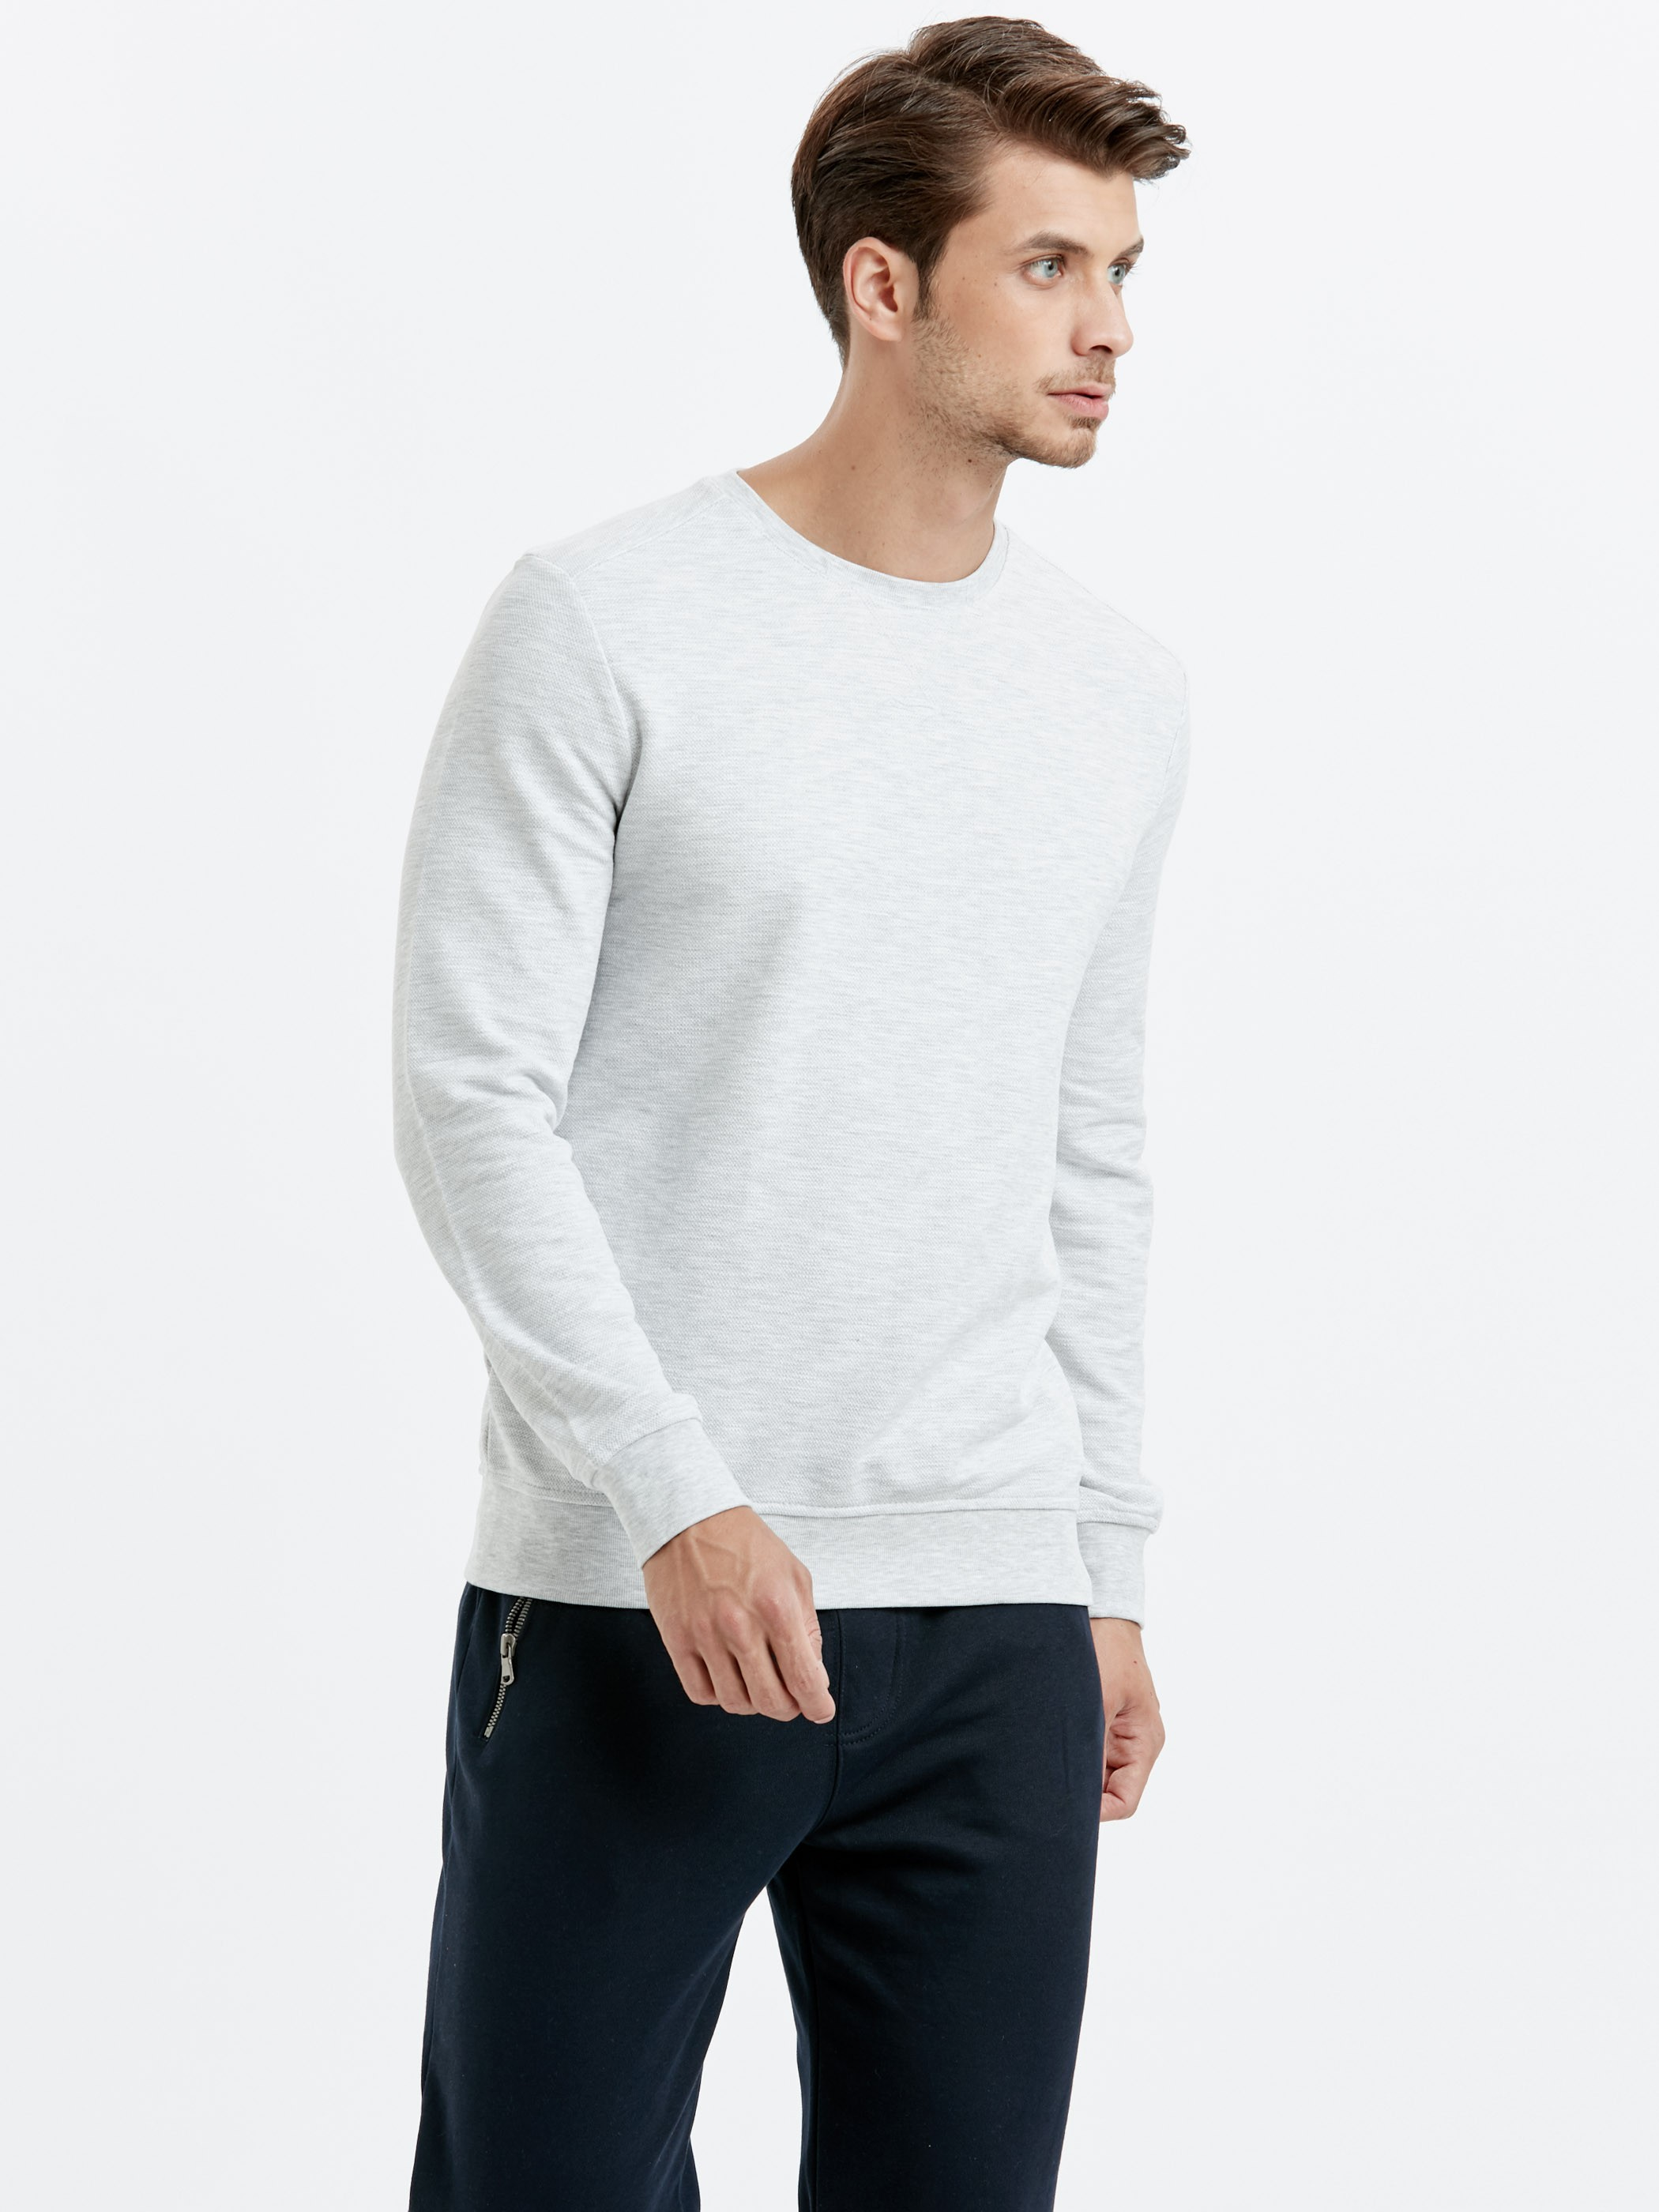 GREY - Crew Neck Basic Sweatshirt - 8W0912Z8